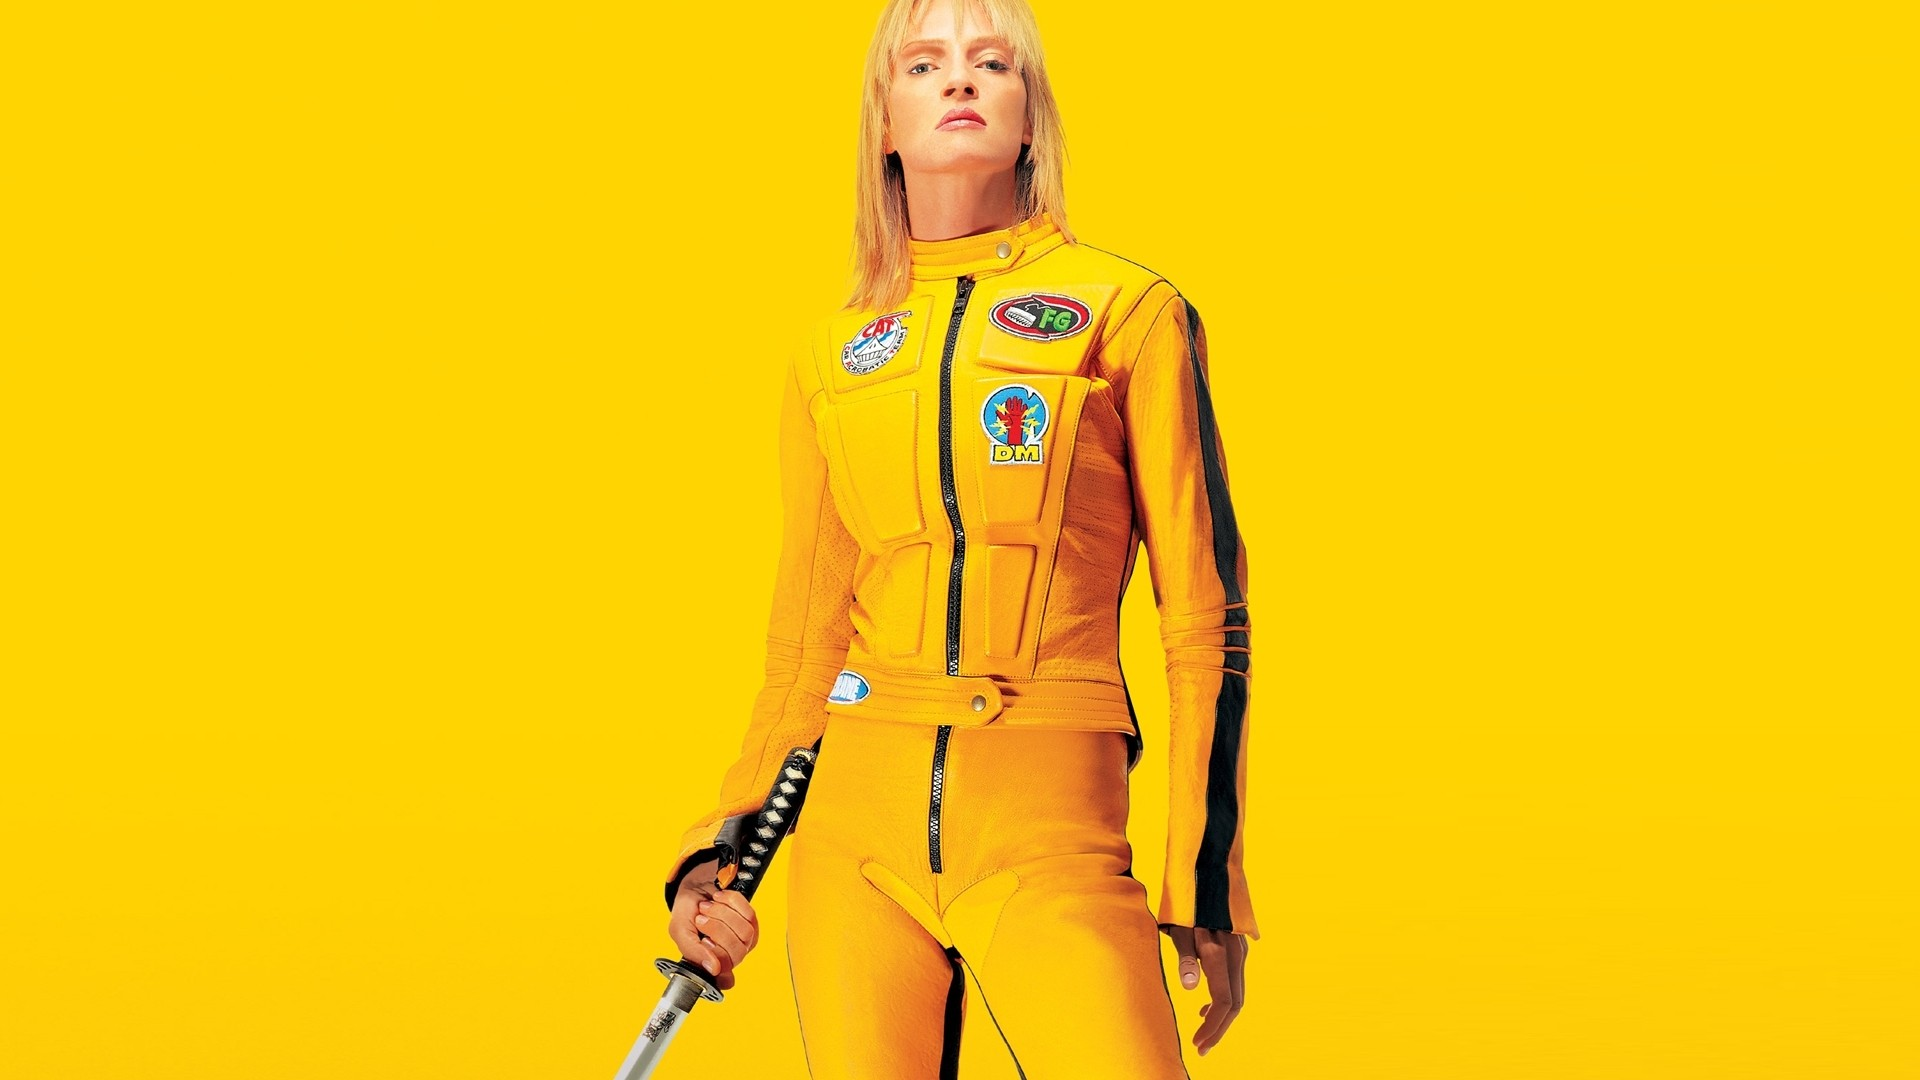 Kill Bill Vol 1 Original2 Pictures to pin on Pinterest Uma Thurman Lyrics